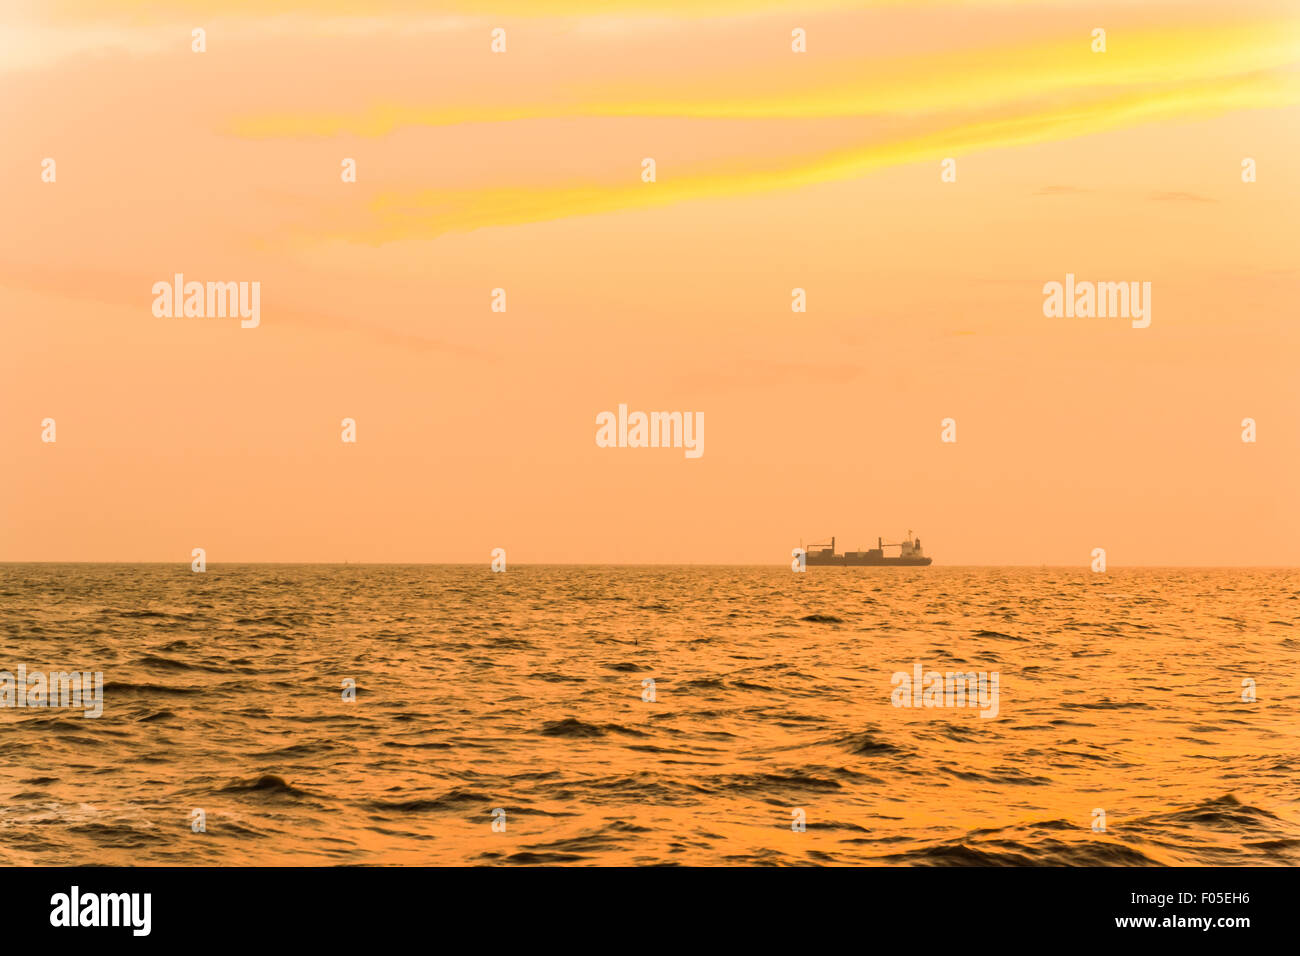 General cargo ship in the evening - Stock Image